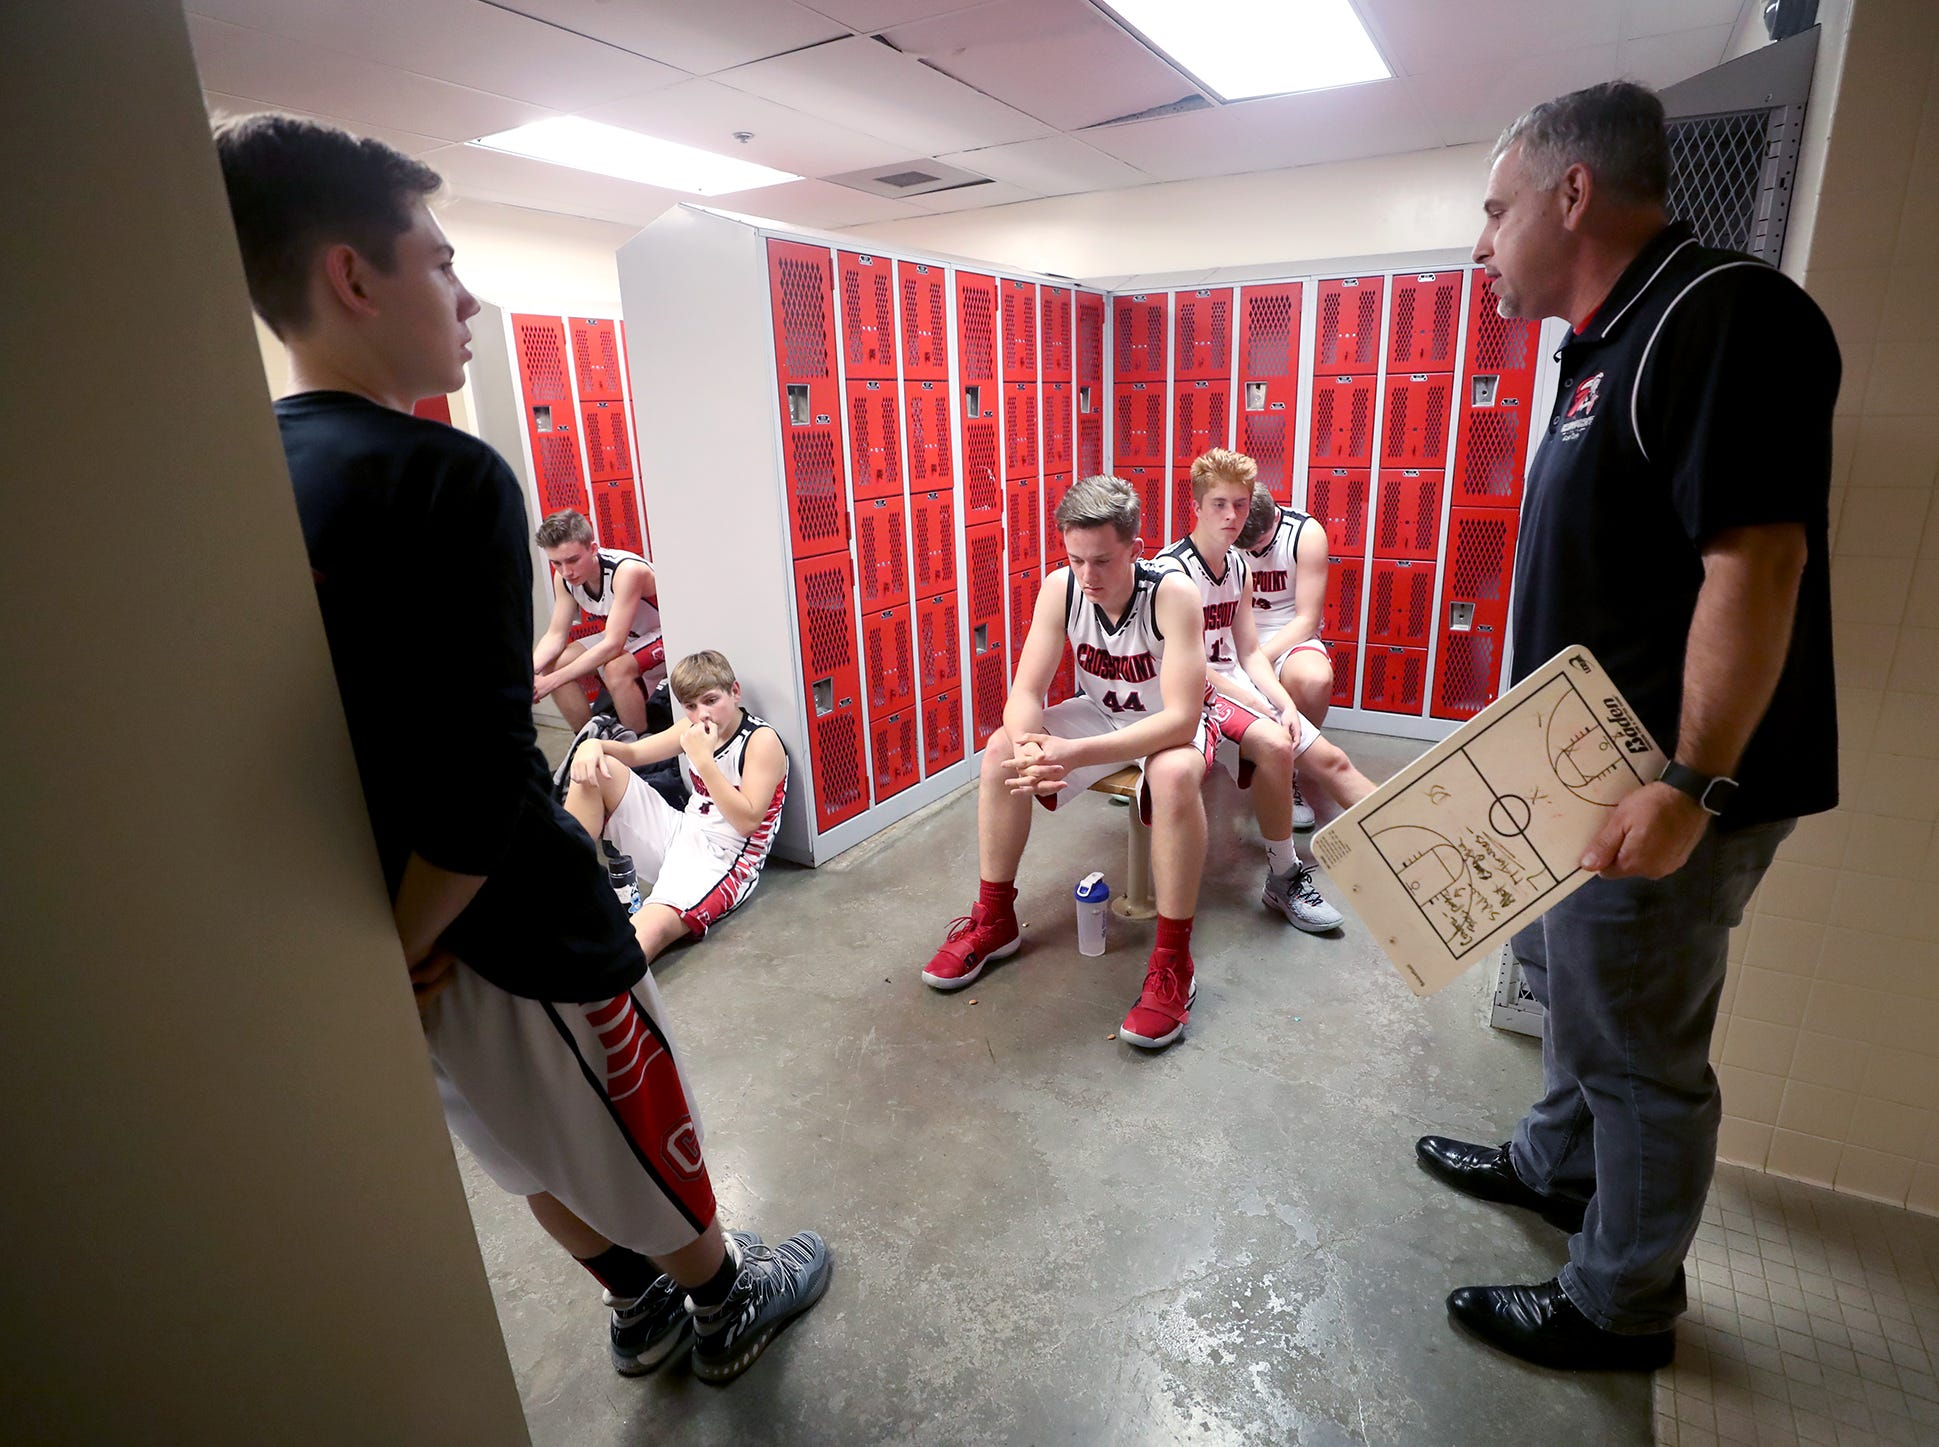 The Crosspoint boys basketball team played Klahowya at Crosspoint on Friday, December, 4, 2019. Crosspoint new varsity coach Derrin Doty gives the team a halftime pep talk after they fell behind in the game.